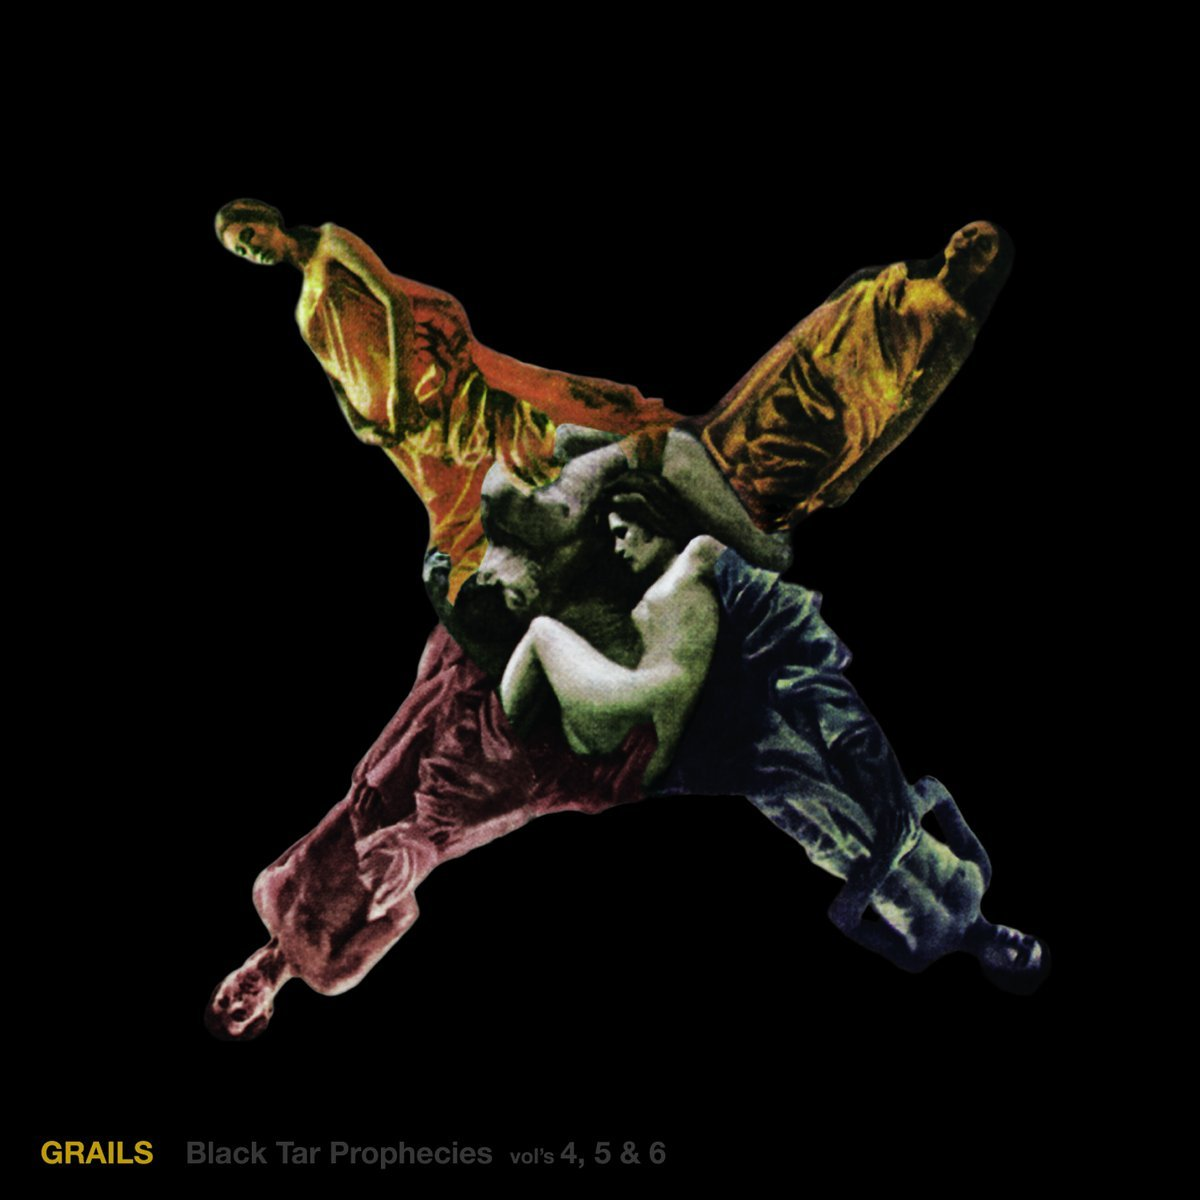 Grails - 'Black Tar Prophecies 4, 5 & 6' album cover